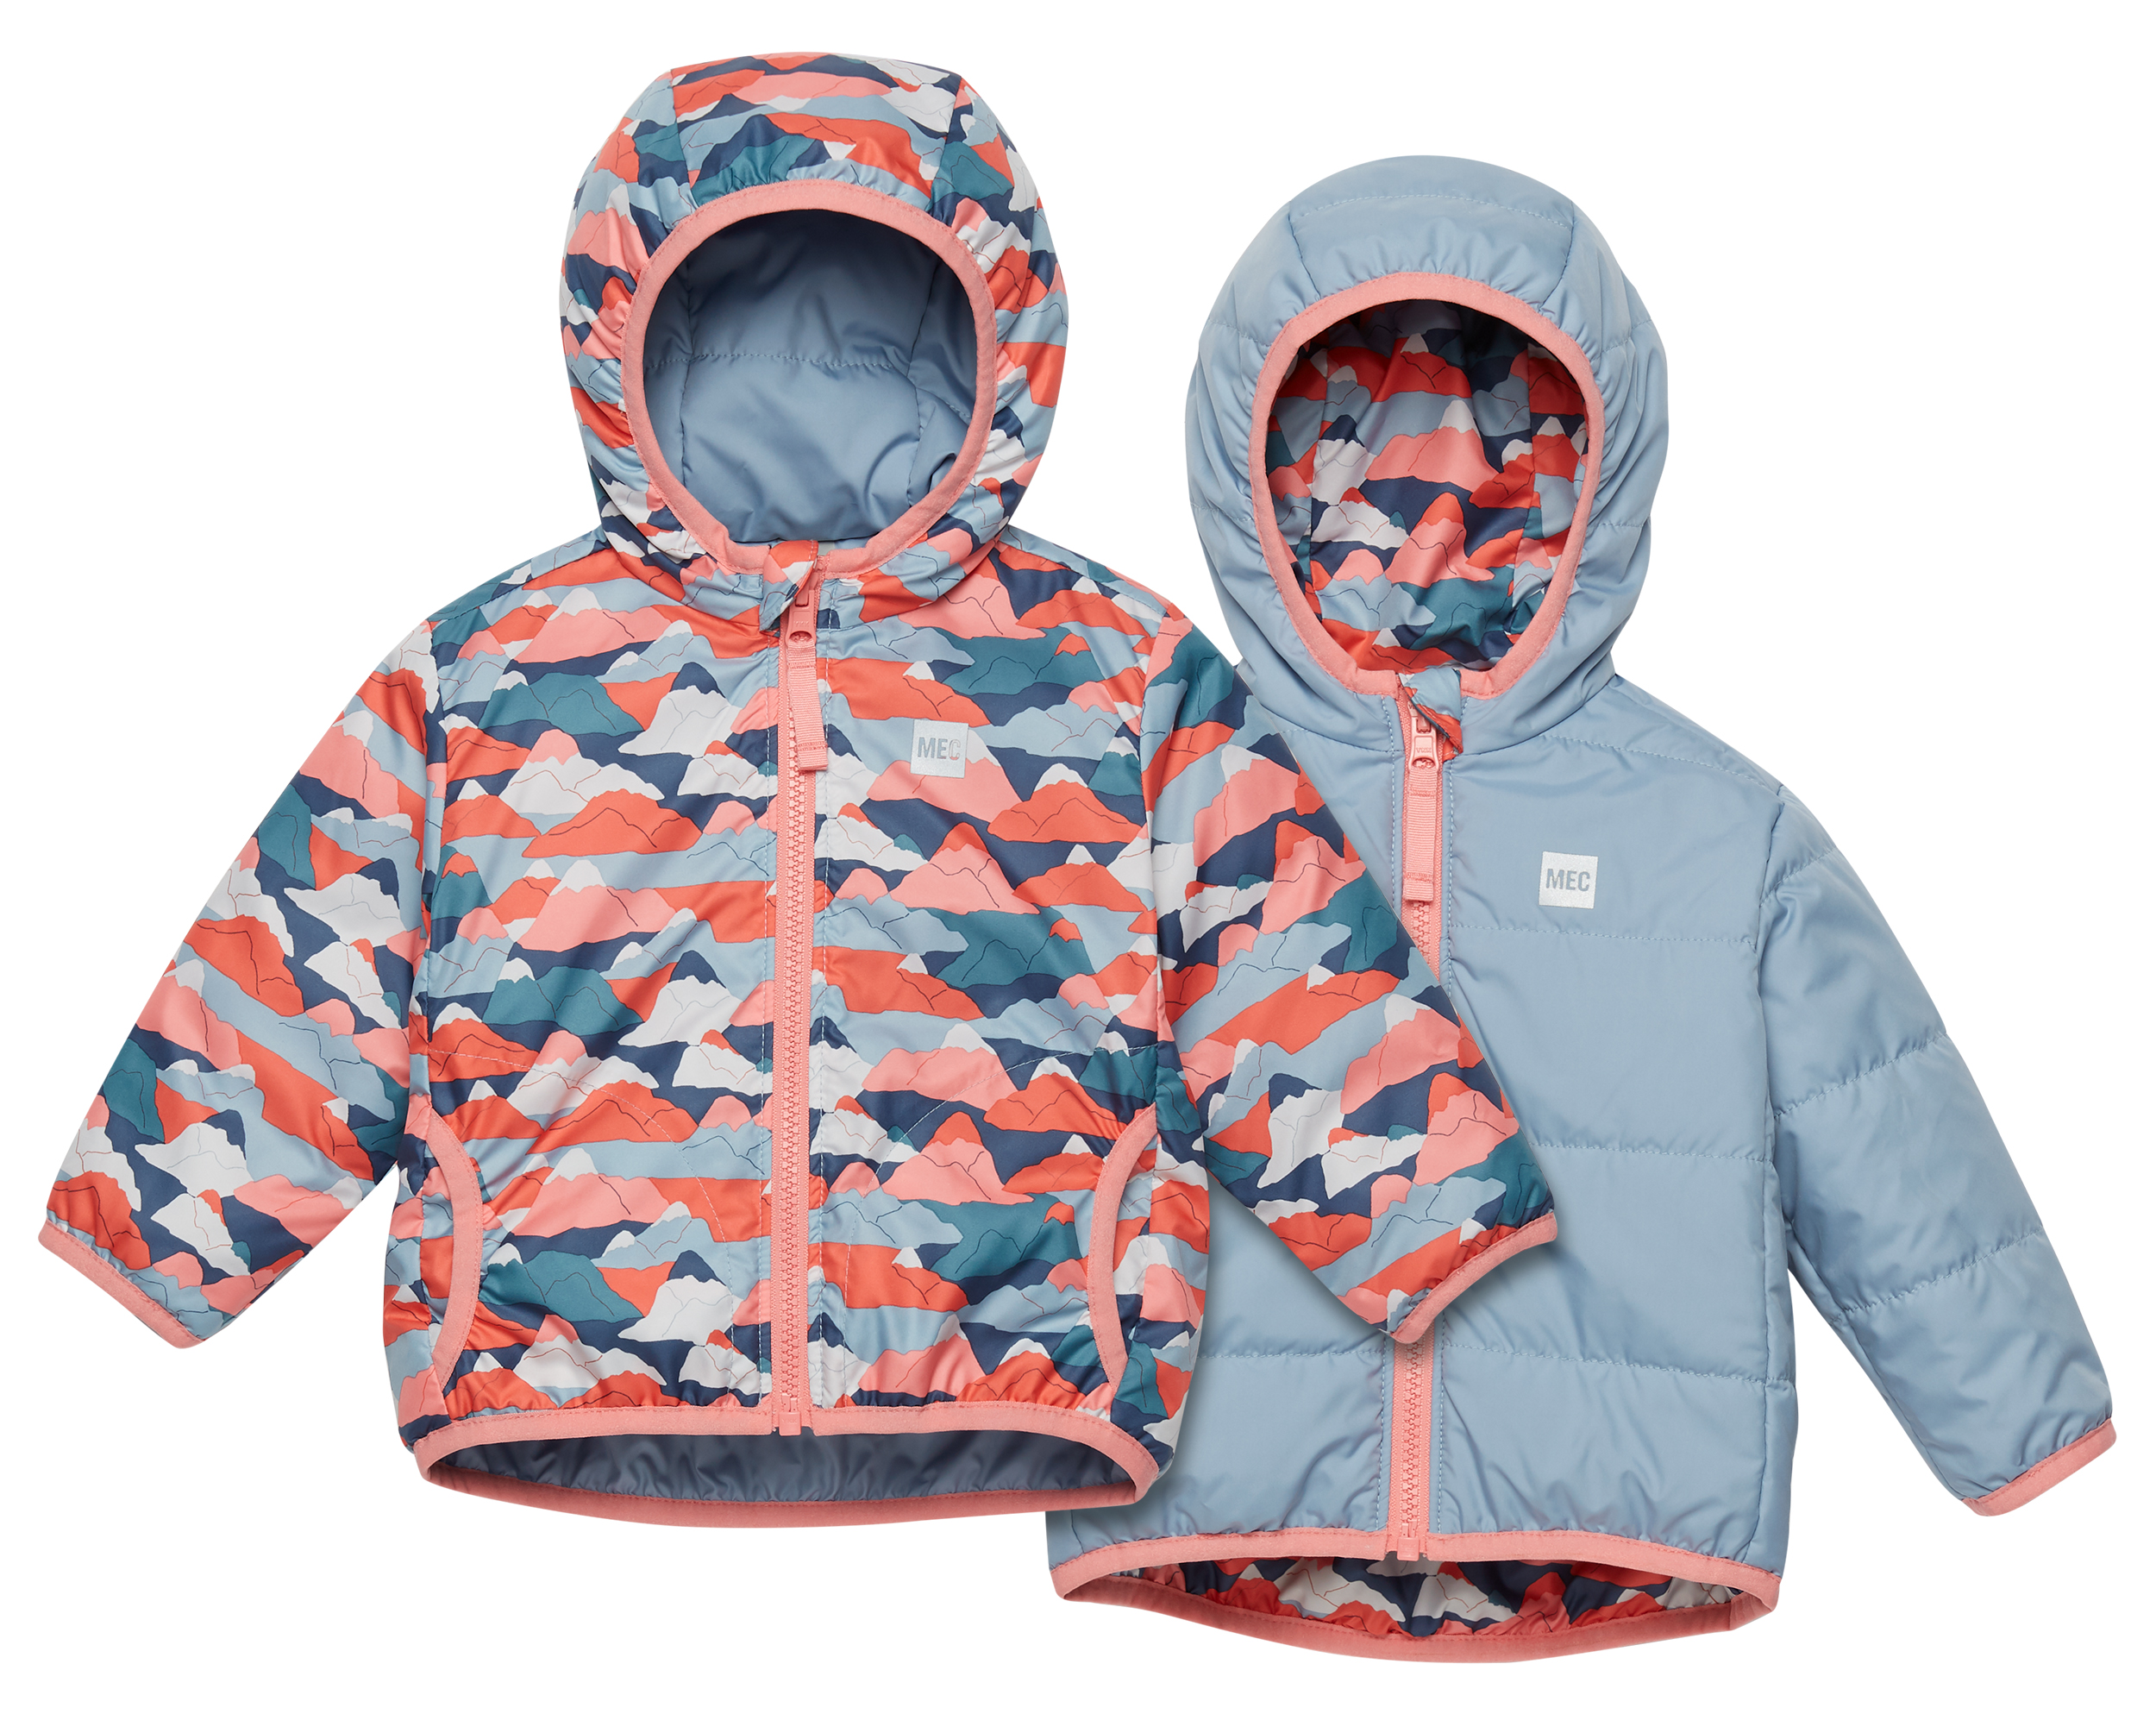 841b076b6e0d MEC Cocoon Reversible Jacket - Infants to Children